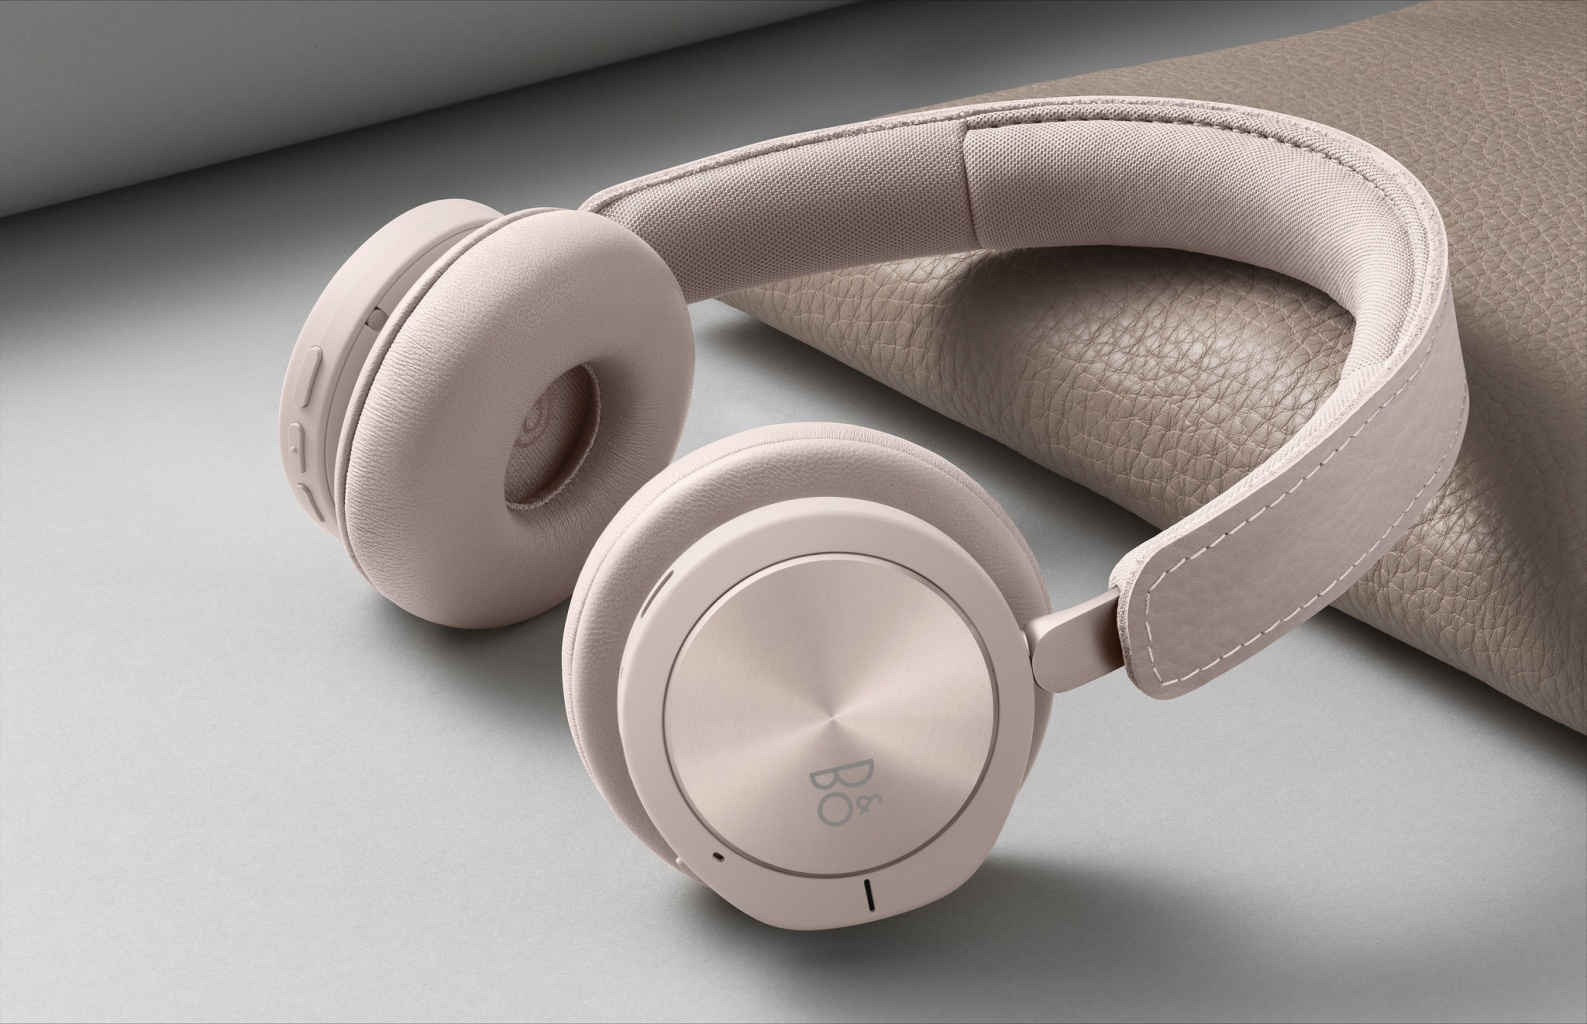 beoplay-h8i-pink-01.jpg